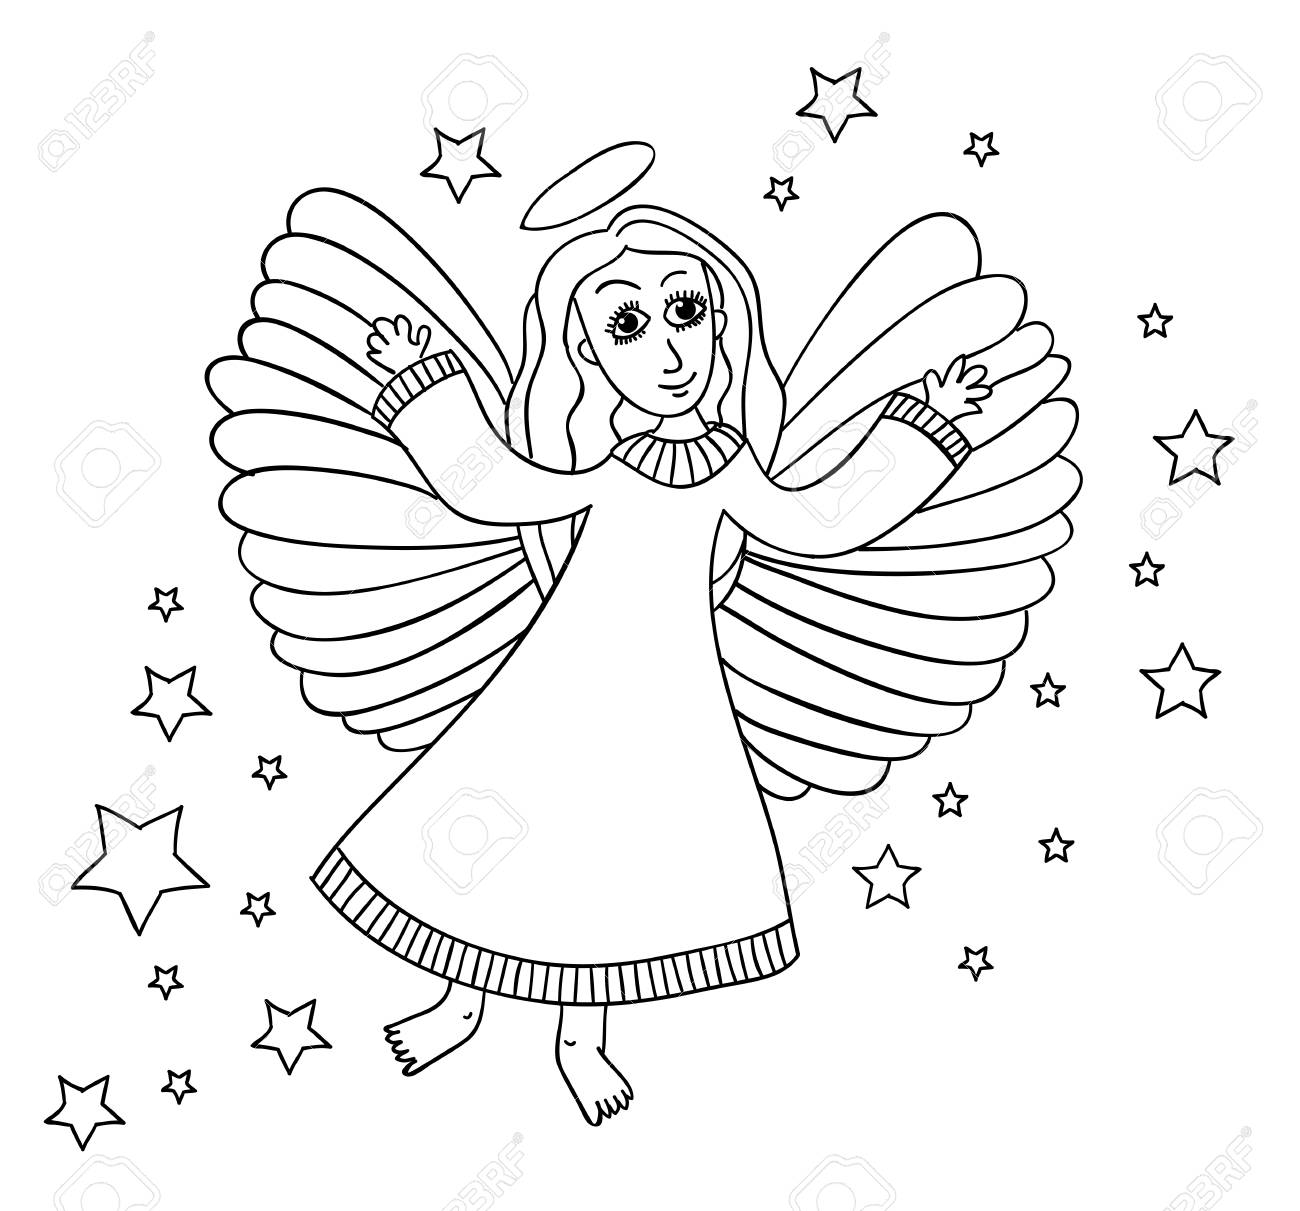 Sketch Of Angel With Stars. Page For Coloring Book. Hands Draw ...